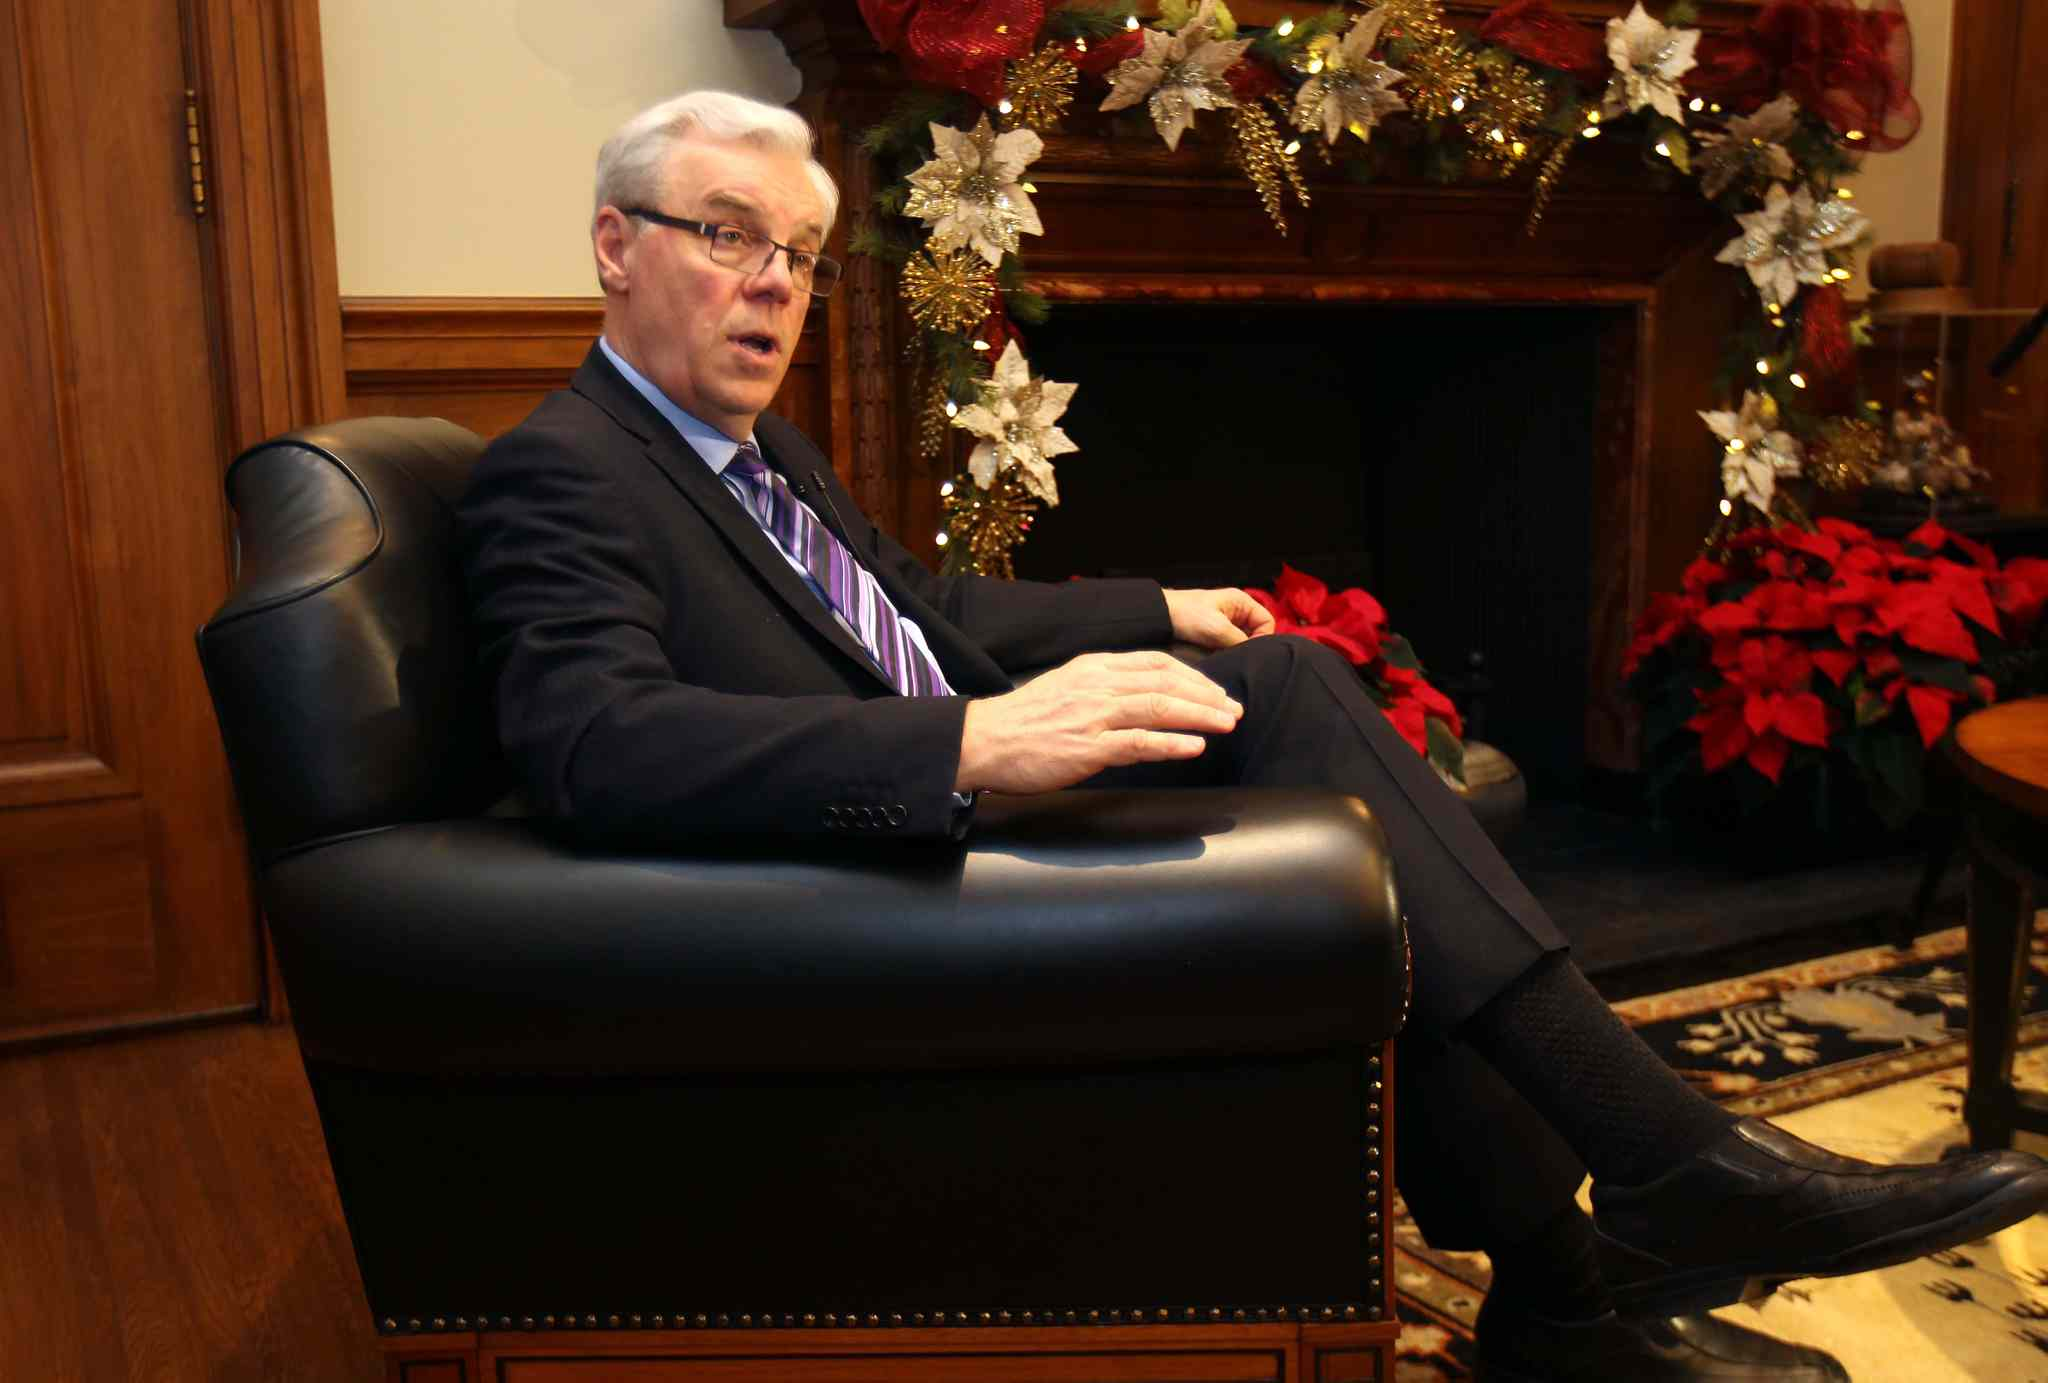 Greg Selinger will make his candidacy for NDP leader official today at 12:15 at the party's offices on Portage Avenue.